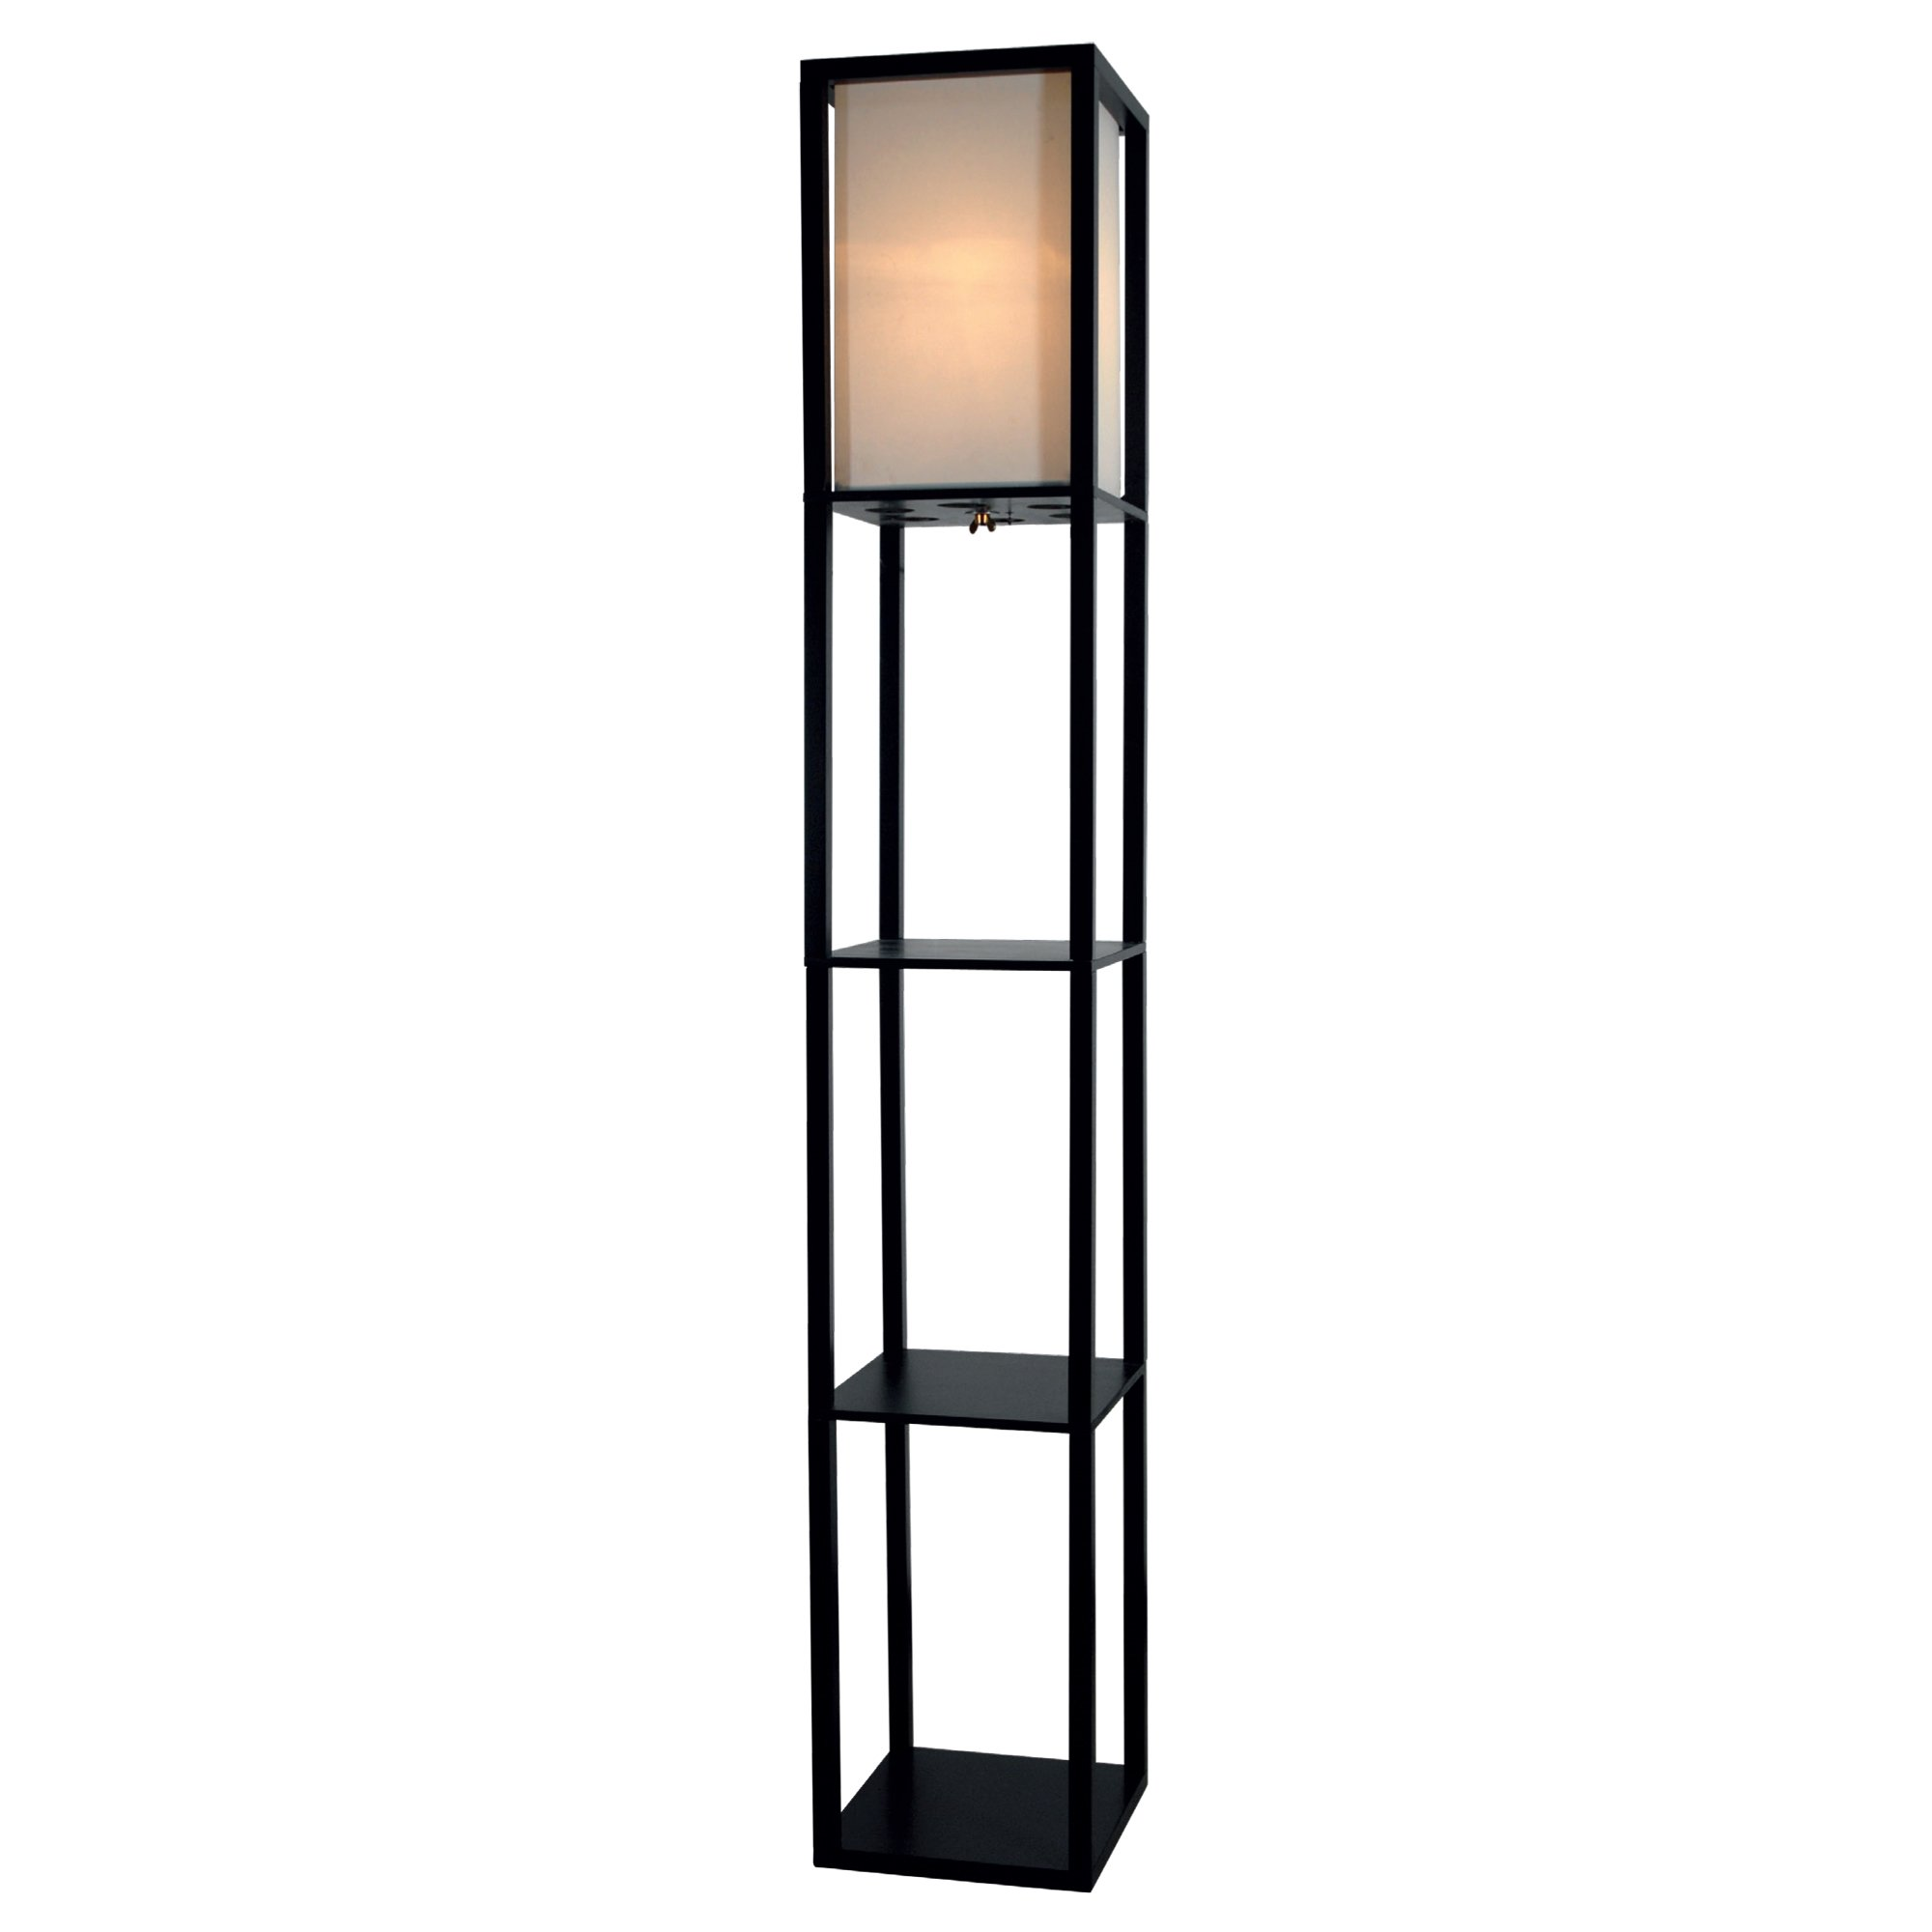 Light Accents Floor Lamp 3 Shelf Standing Lamp 63'' Tall Wood with White Linen Shade (Black)